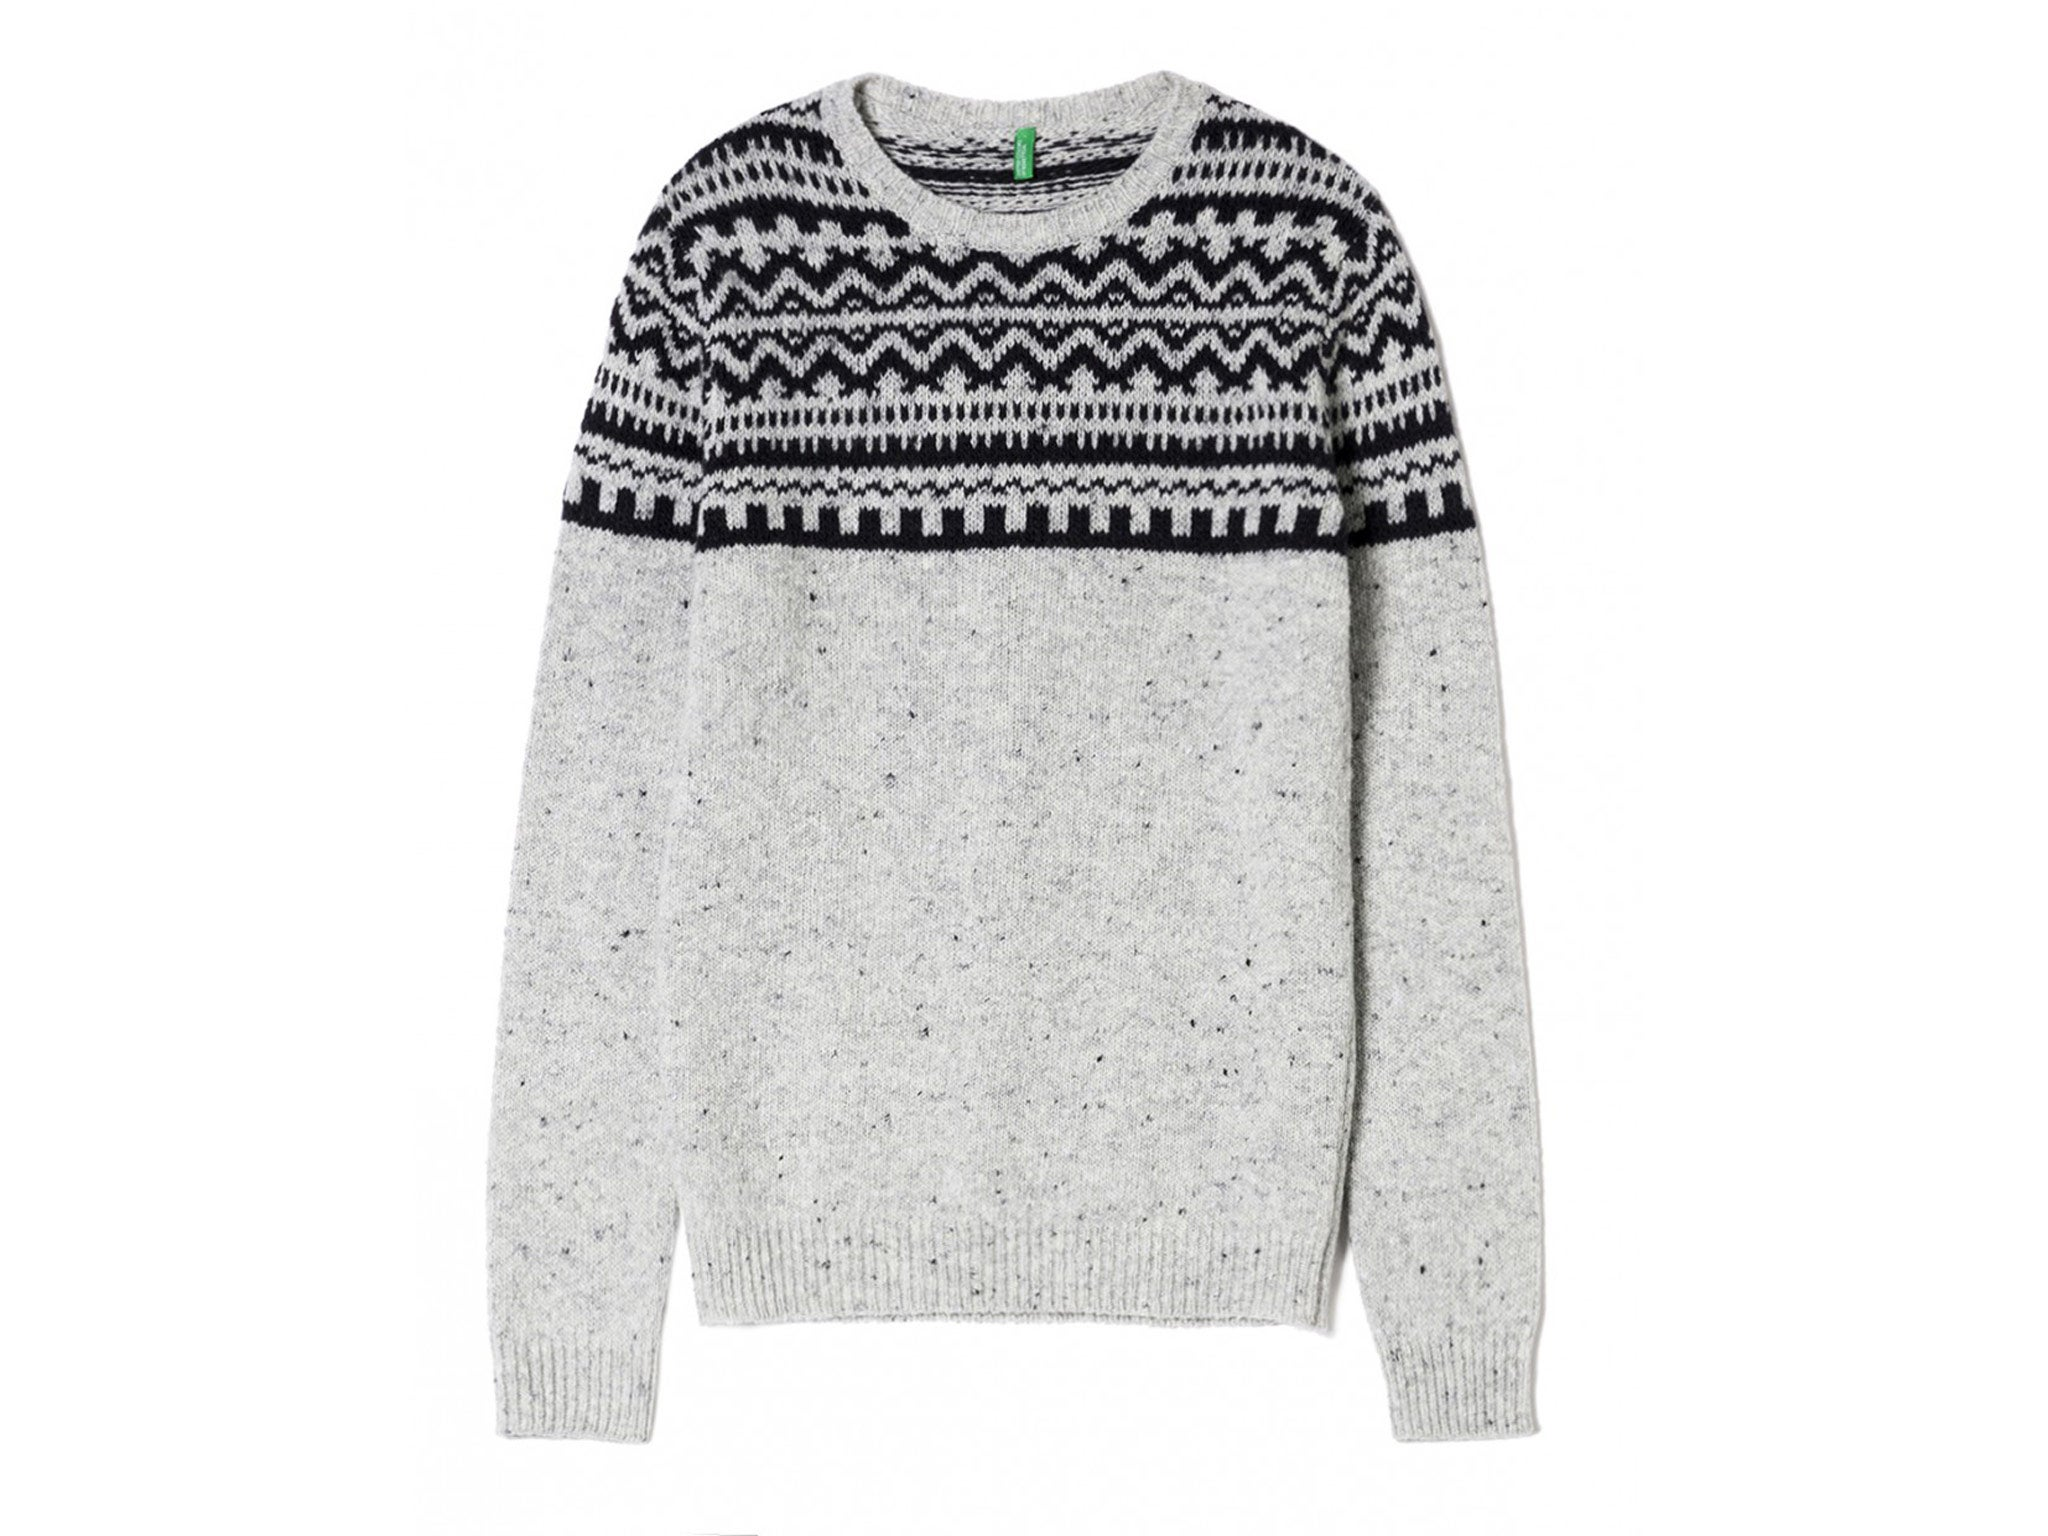 10 Patterned Knits To Invest In Now